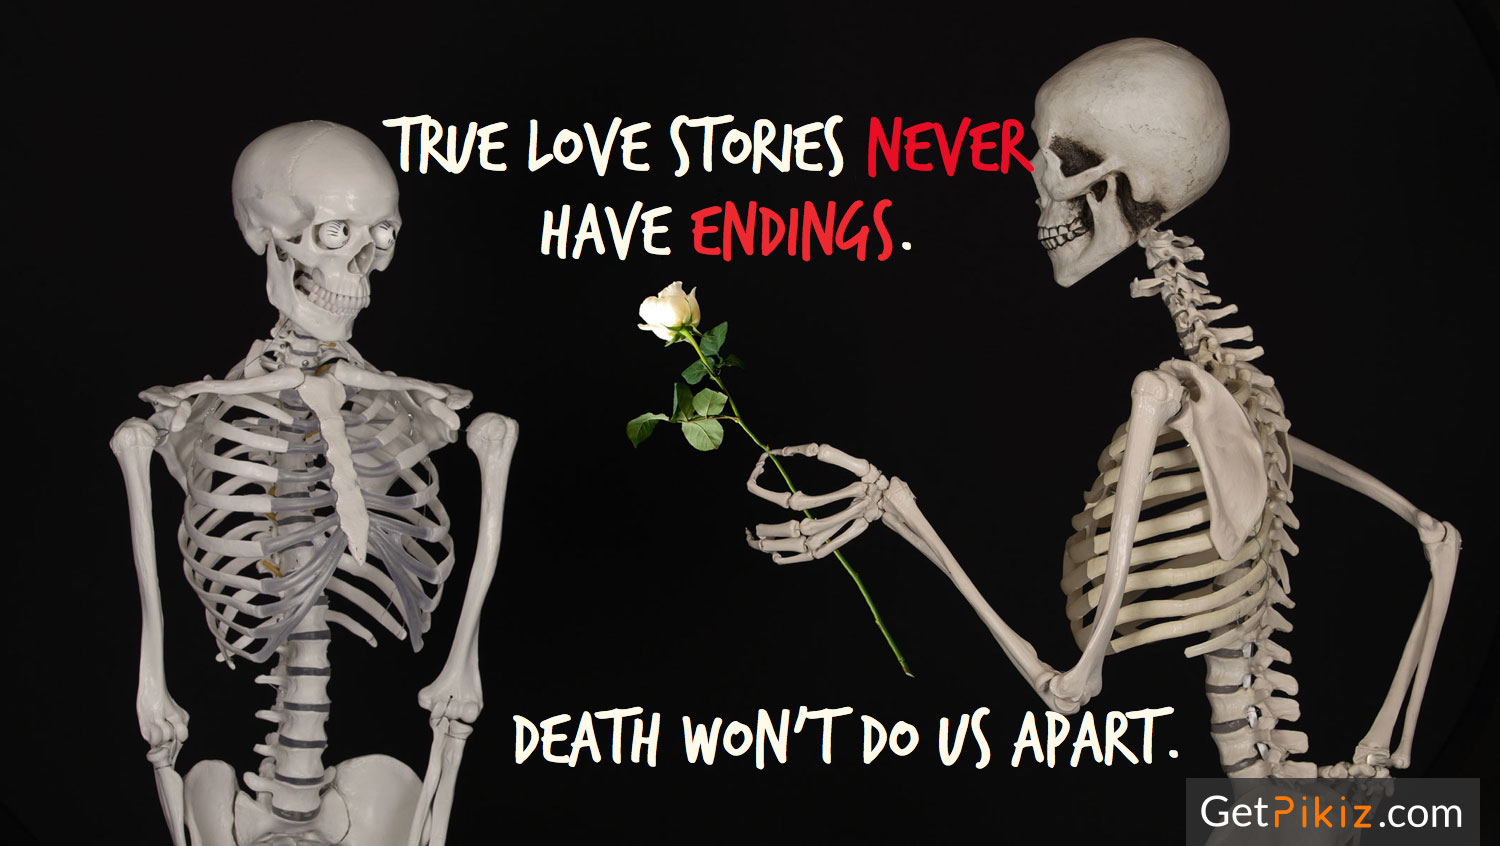 True Love stories never have endings. Death won't do us apart.